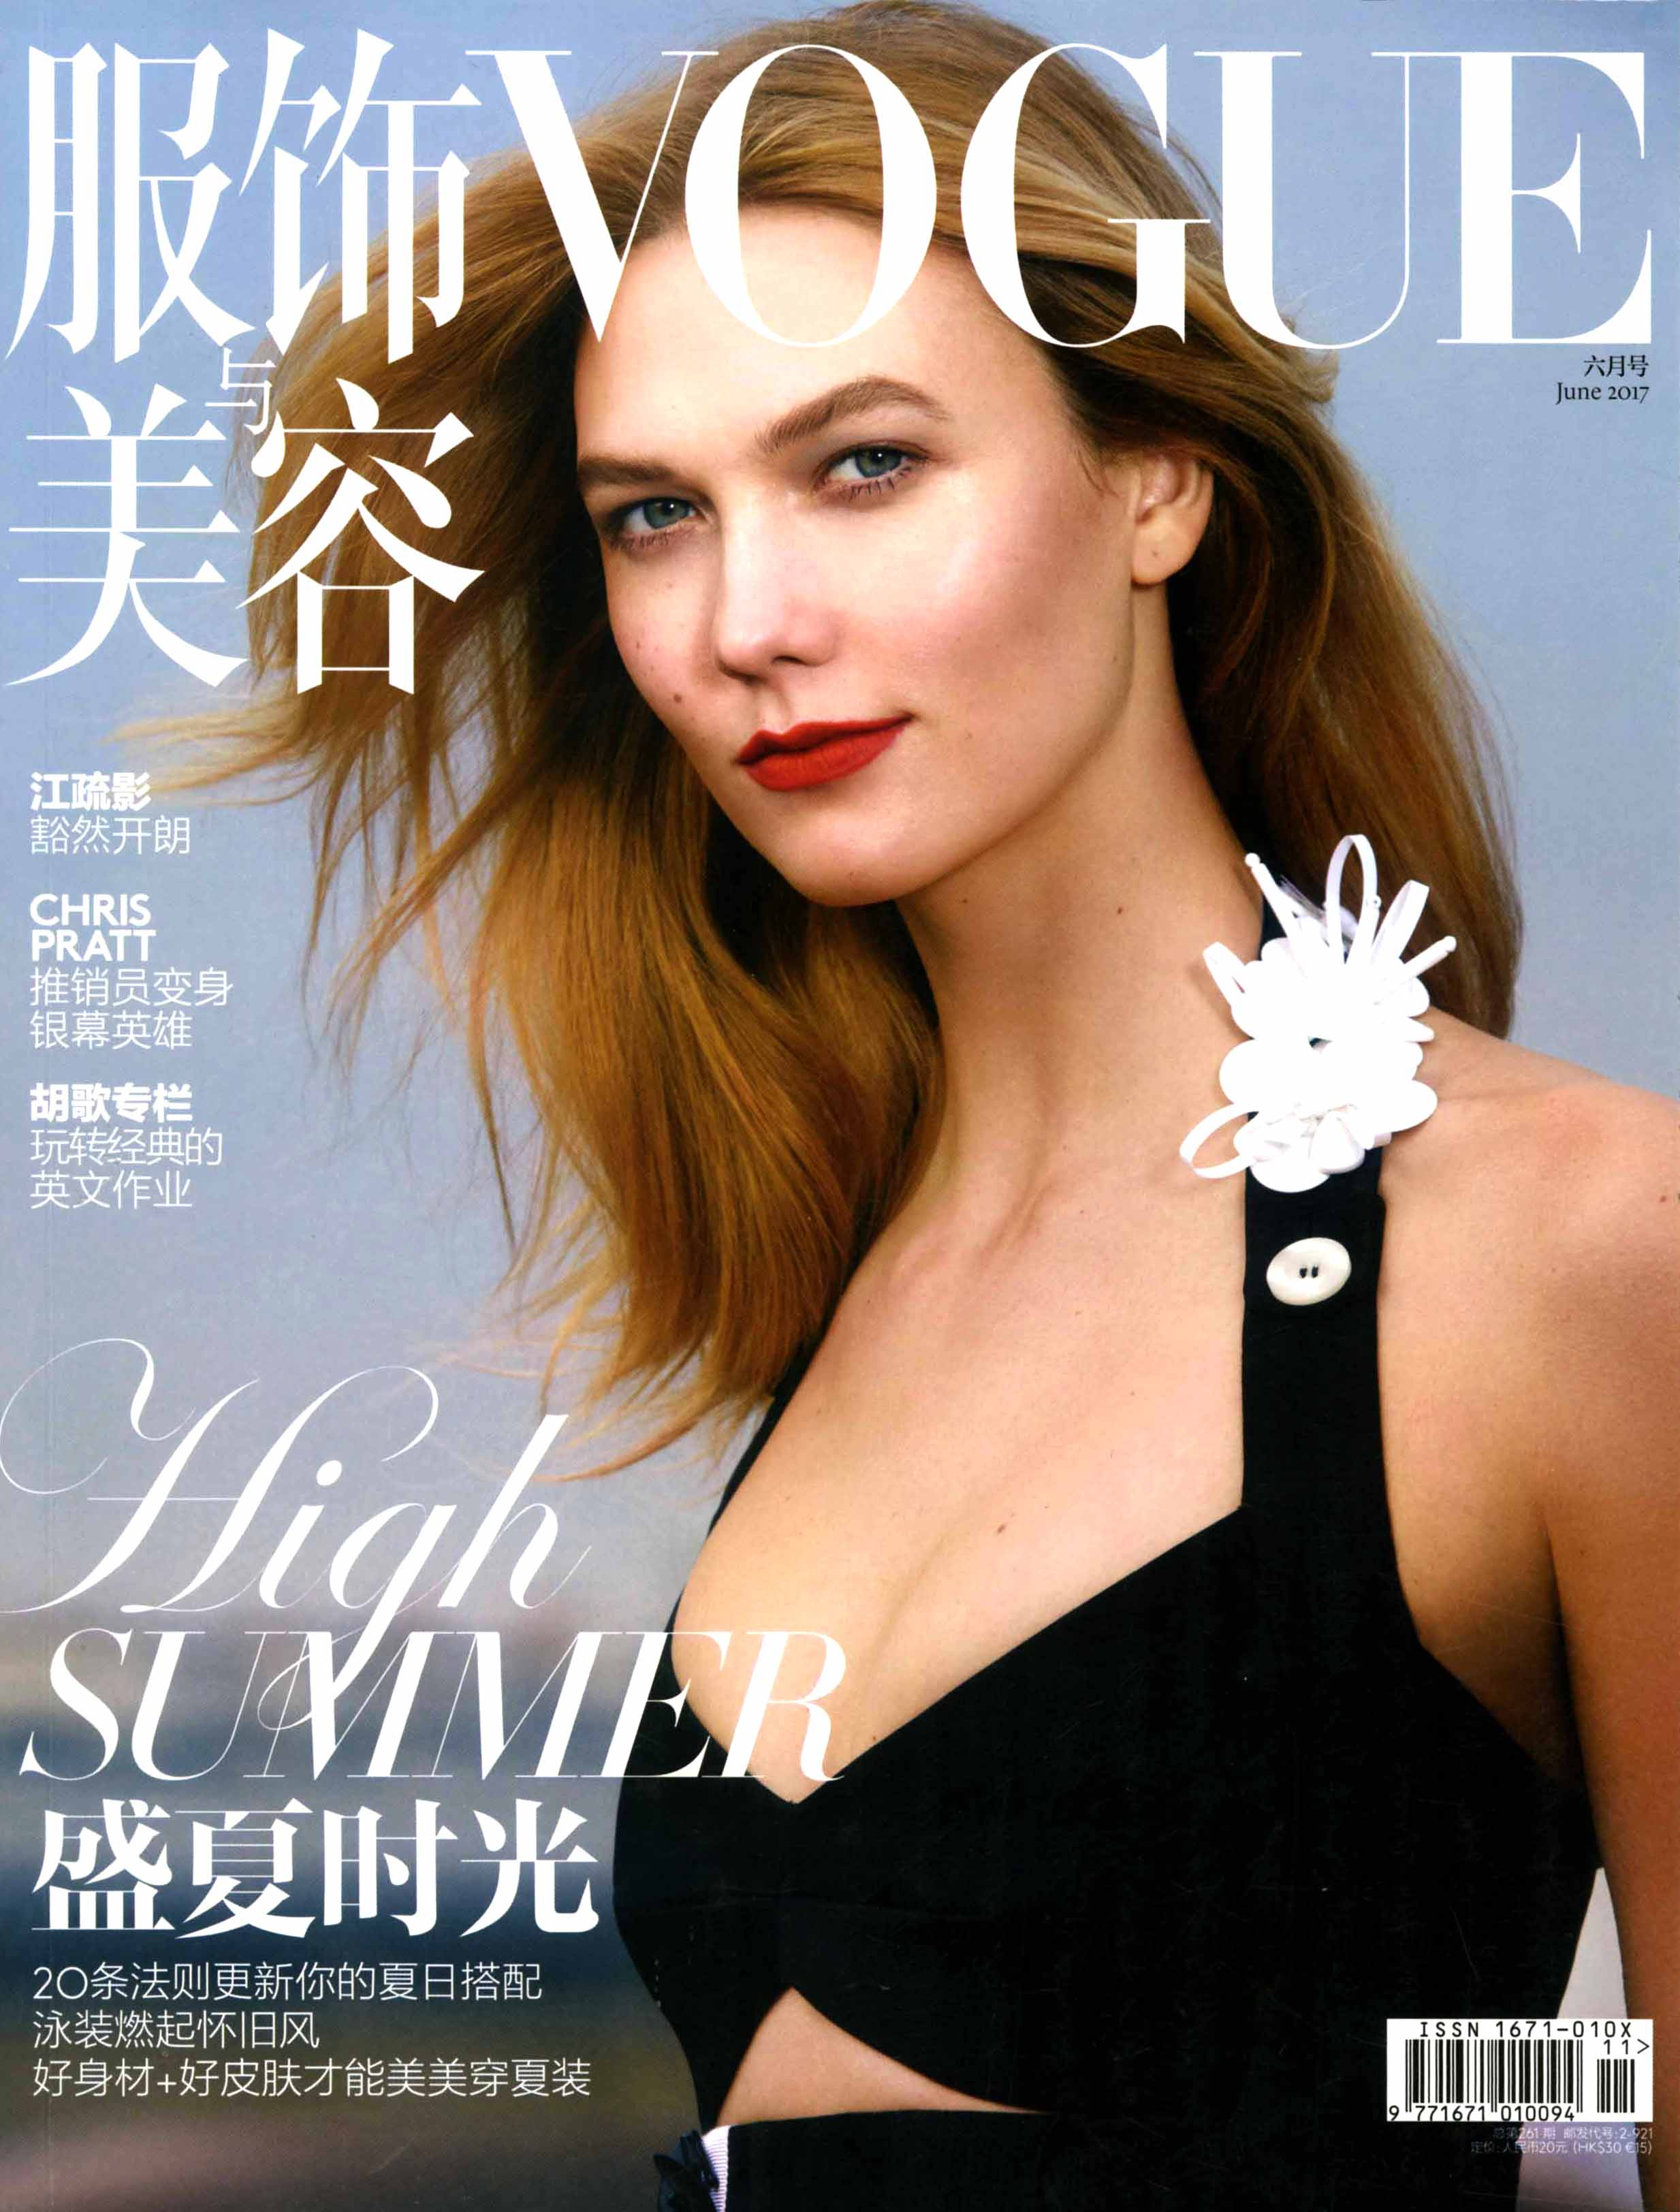 Vogue - June 2017 - Cover.jpg